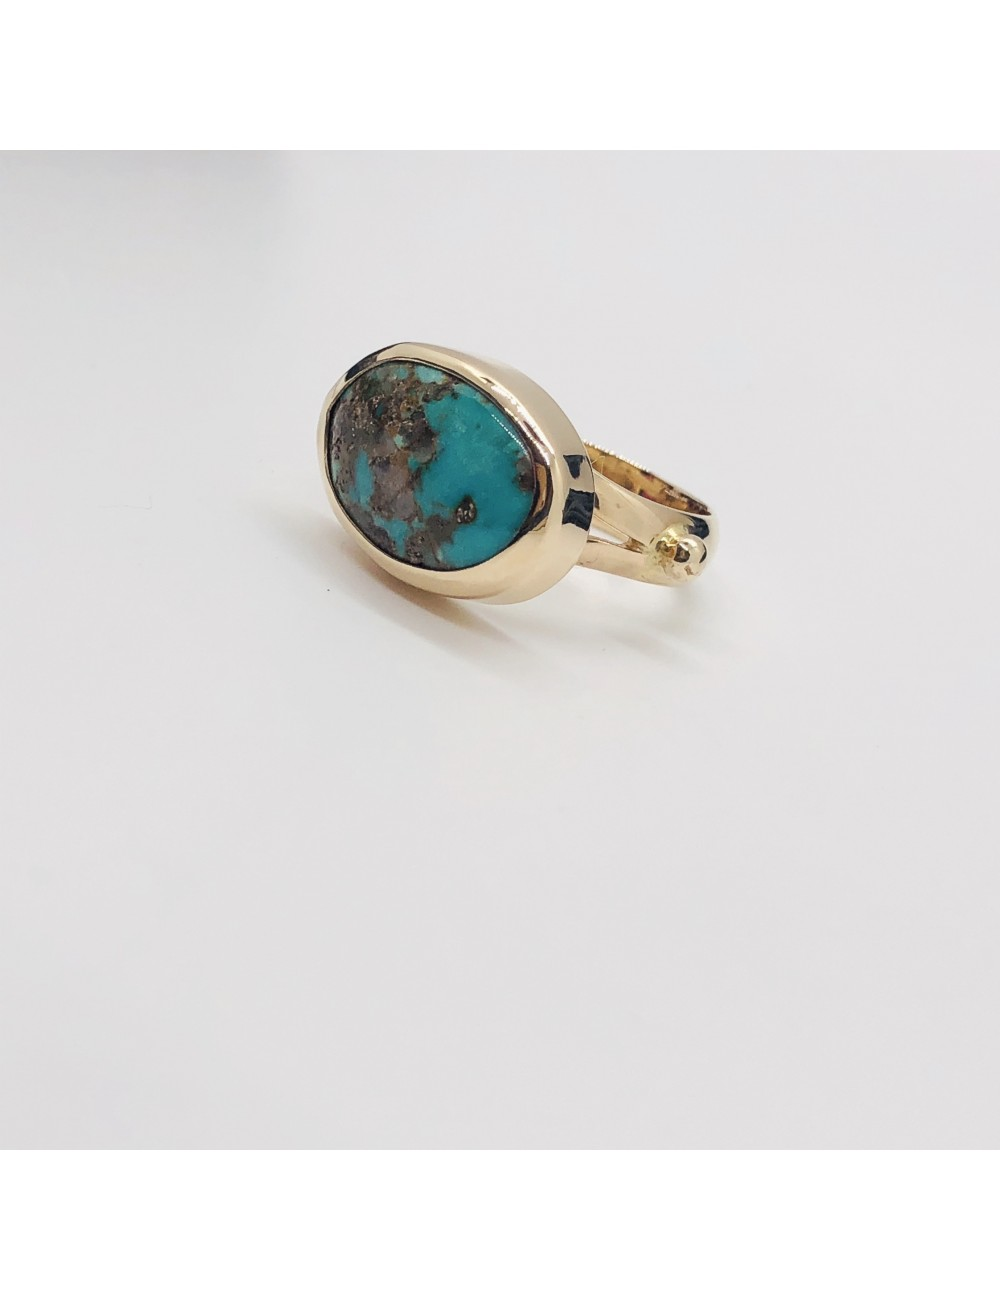 Turquoise Mania oval turquoise ring